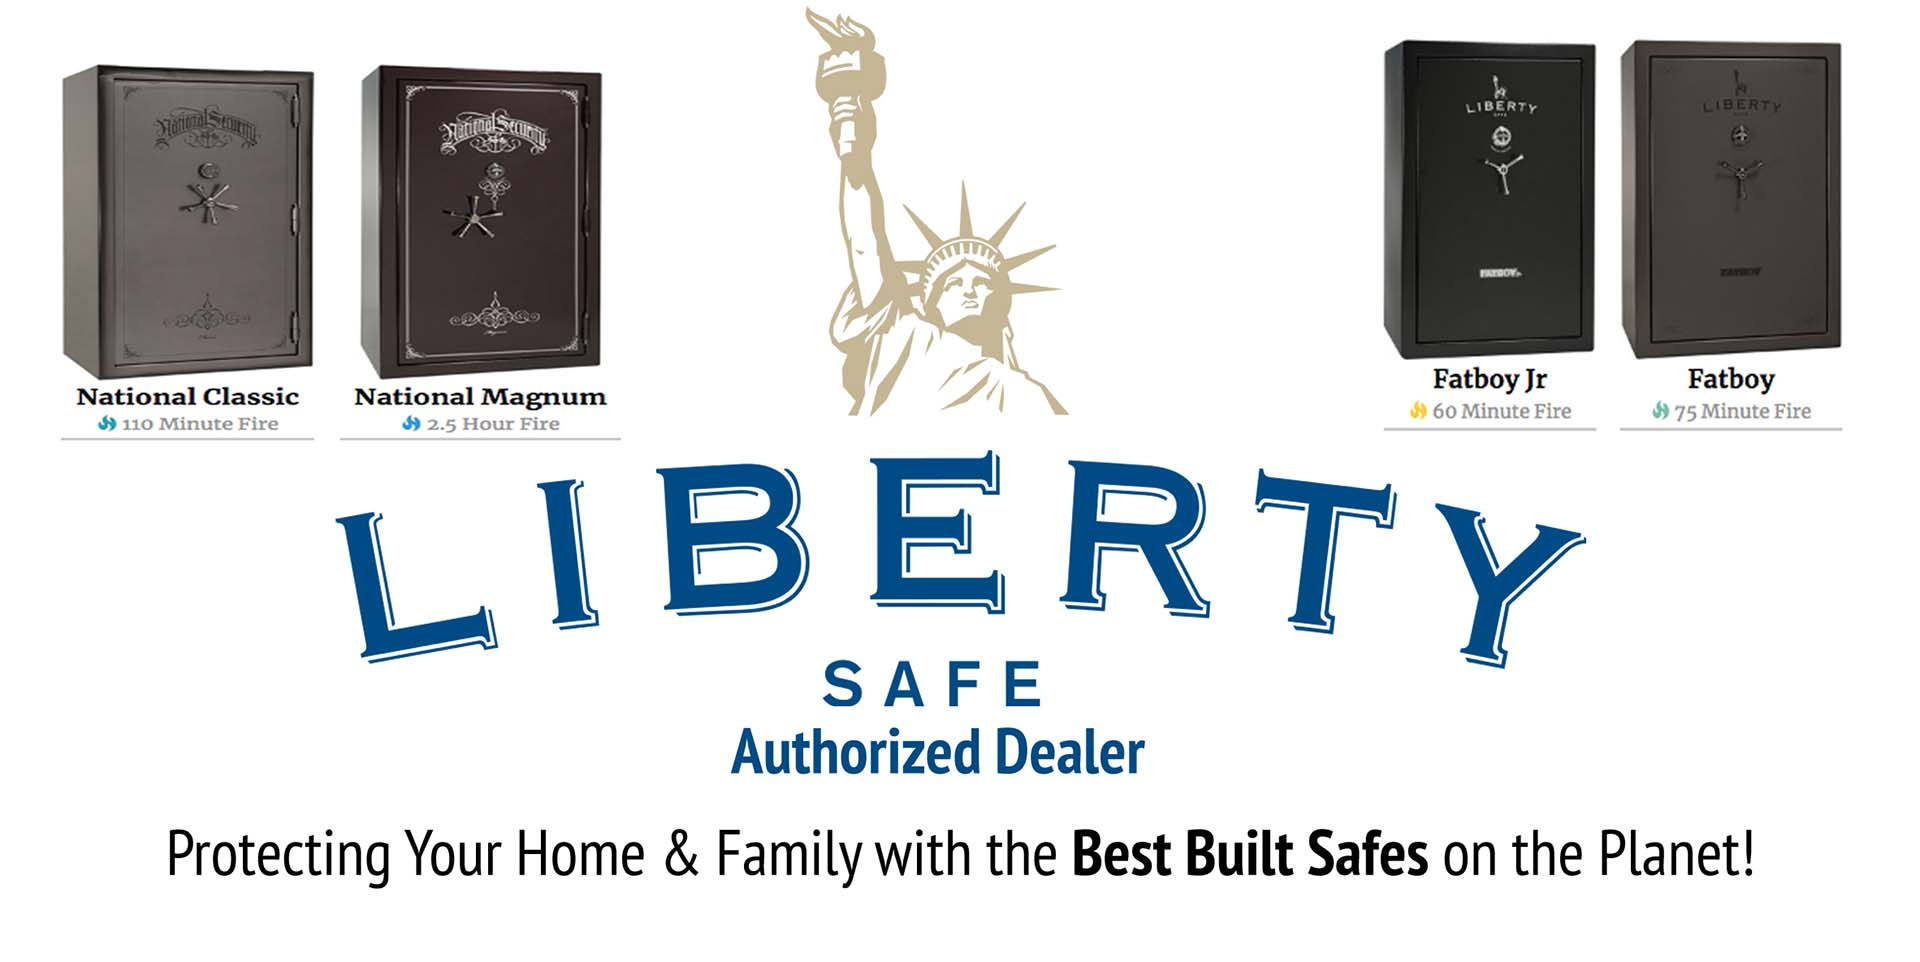 Authorized Liberty Safes dealer